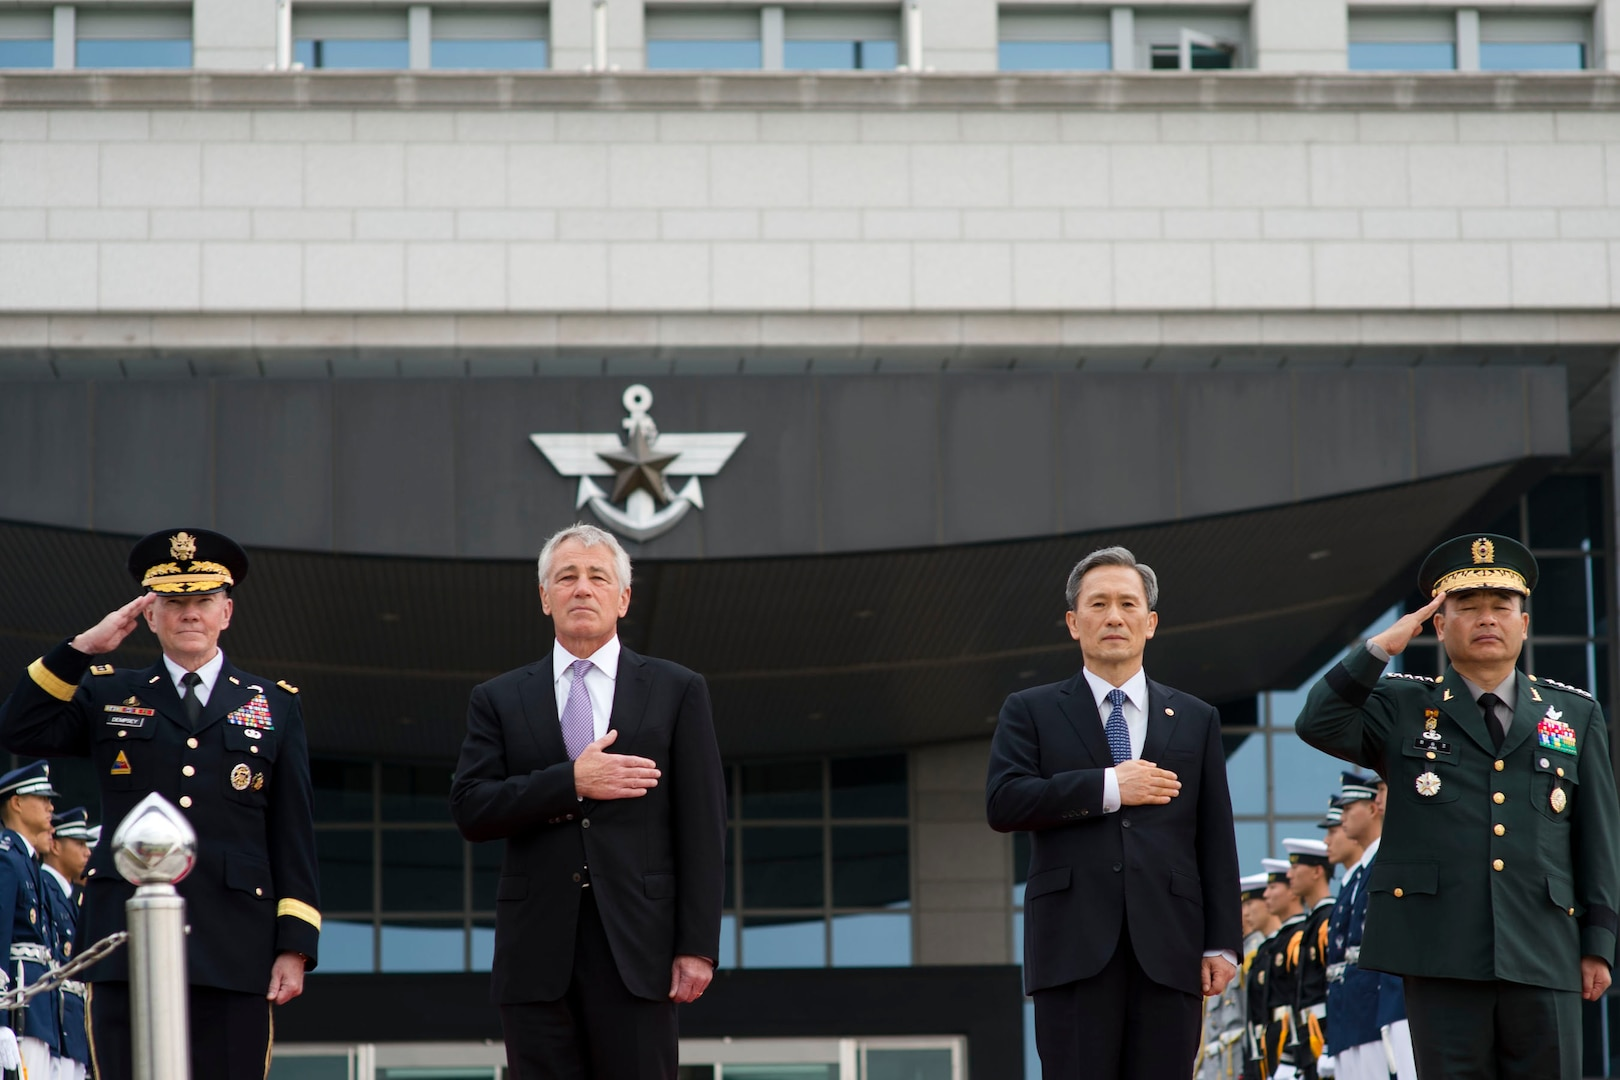 U.S. Defense Secretary Chuck Hagel, second from left, and U.S. Army Gen. Martin E. Dempsey, left, stand with South Korean Defense Minister Kim Kwan-jin, second from right, and South Korean army Gen. Jung Seung-jo, his country's chairman of the Joint Chiefs of Staff, during an honor cordon at the Ministry of Defense in Seoul, South Korea, Oct. 2, 2013. DOD photo by Erin A. Kirk-Cuomo